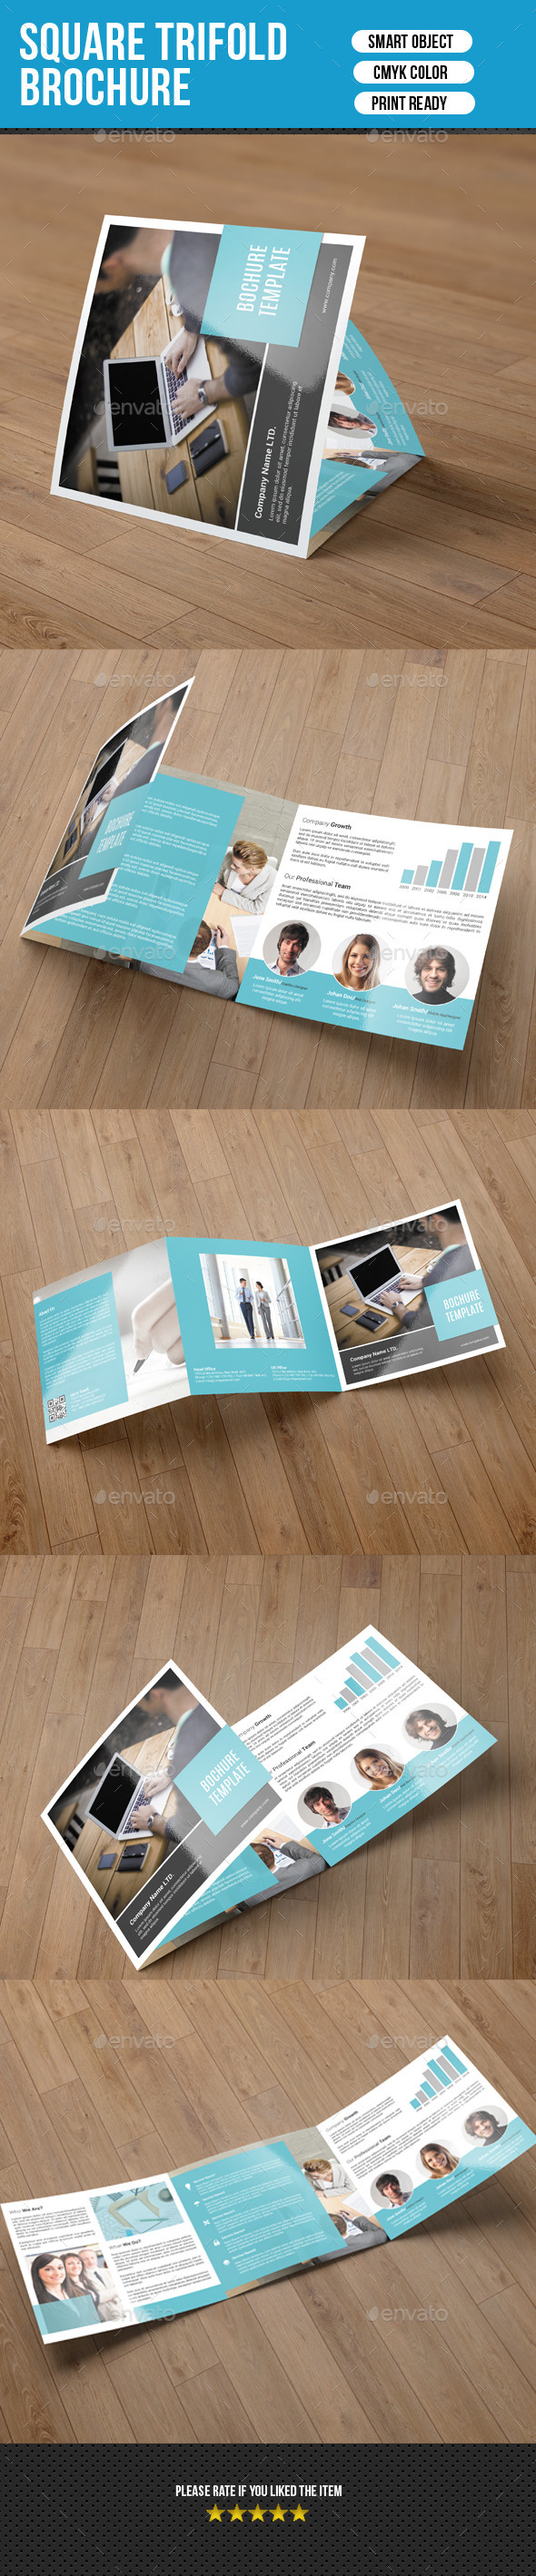 Corporate Square Trifold Brochure-V55 - Corporate Brochures